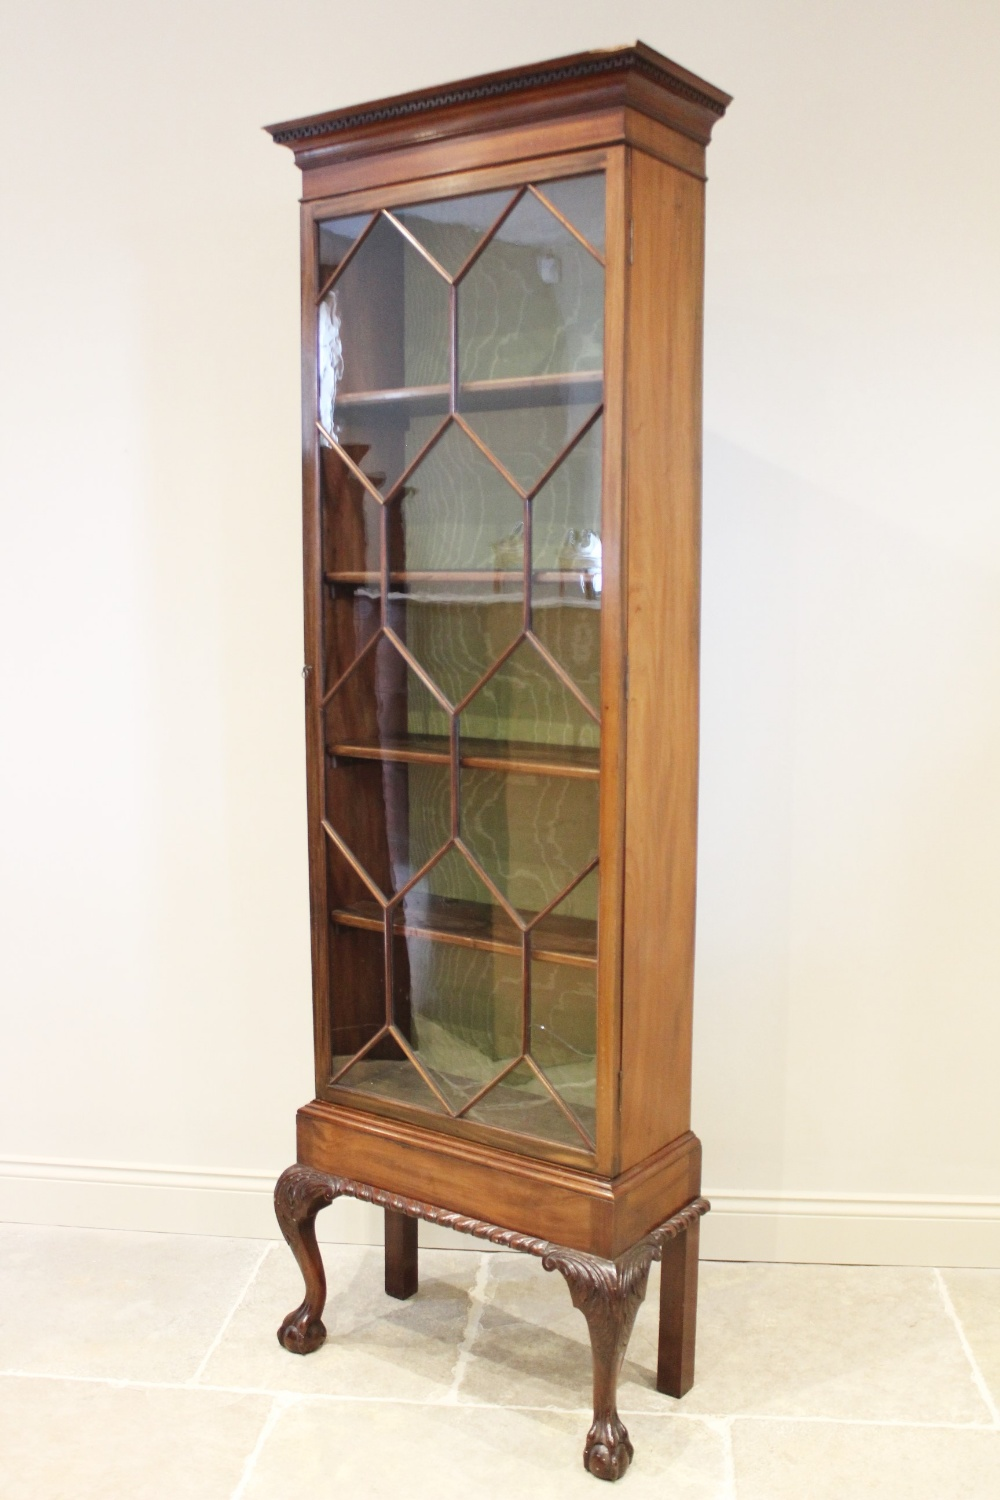 An early 20th century Chippendale revival mahogany display cabinet, with a Greek key pattern - Image 2 of 2